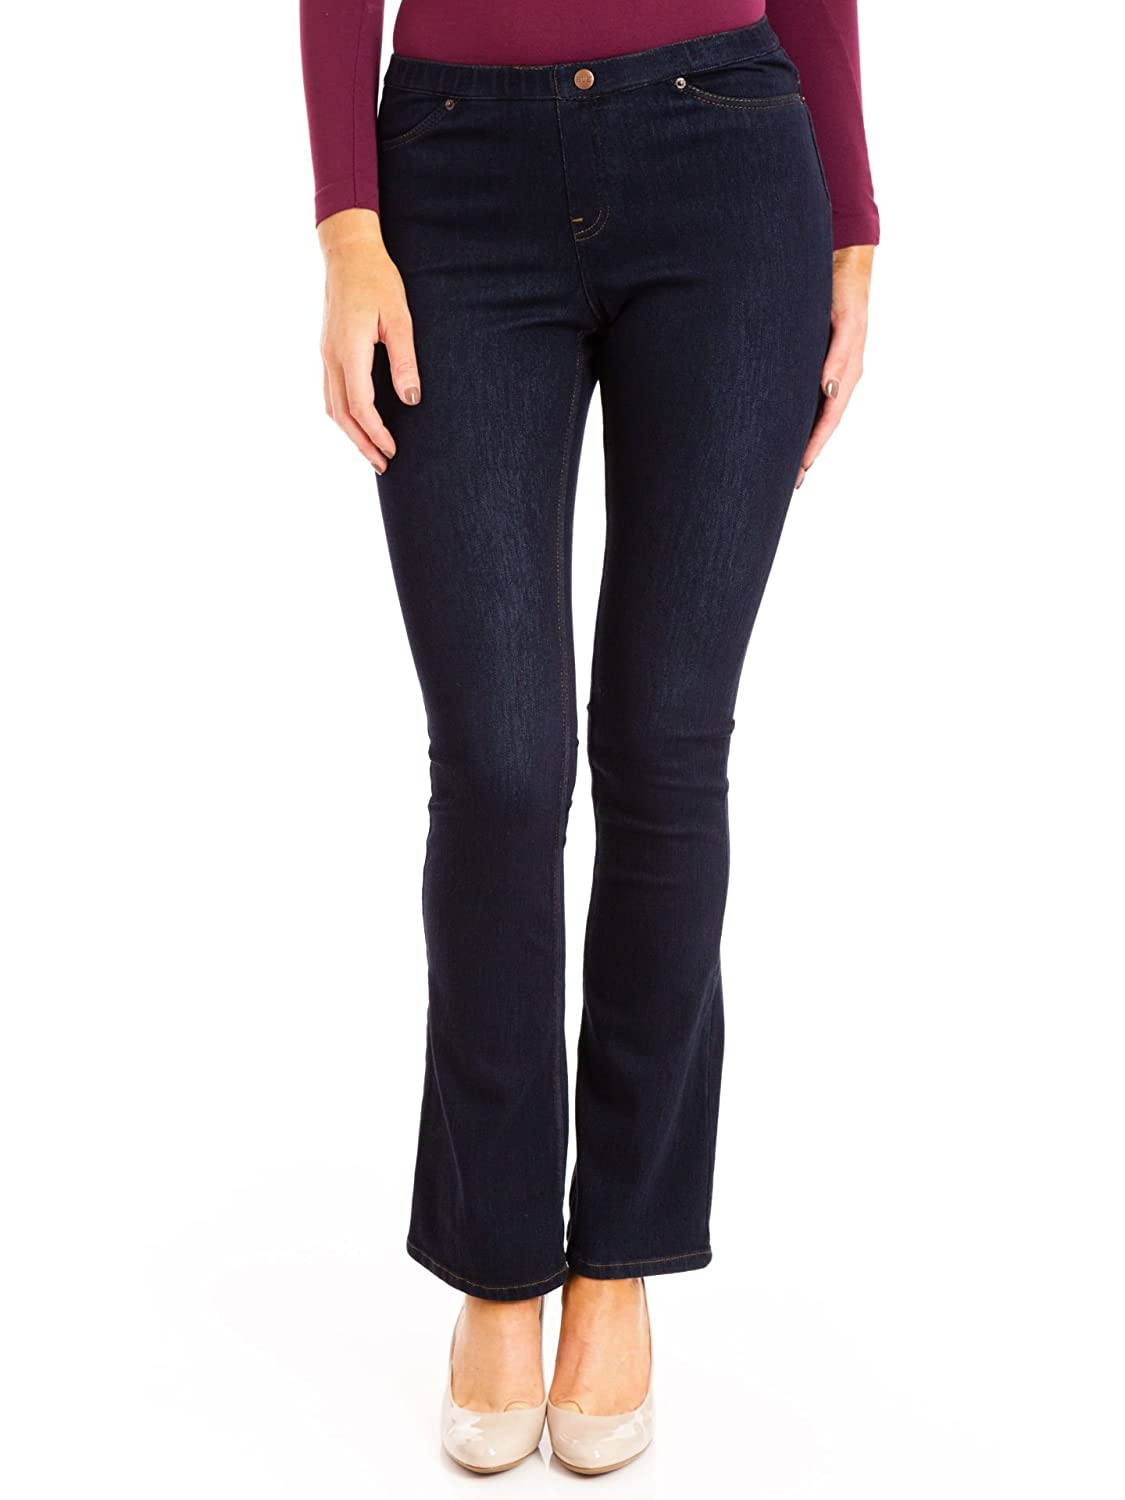 e88b8b6cf66f5 Amazon.com: Hue The Original Jeans Bootcut Legging, Midnight Rinse, Large:  Clothing